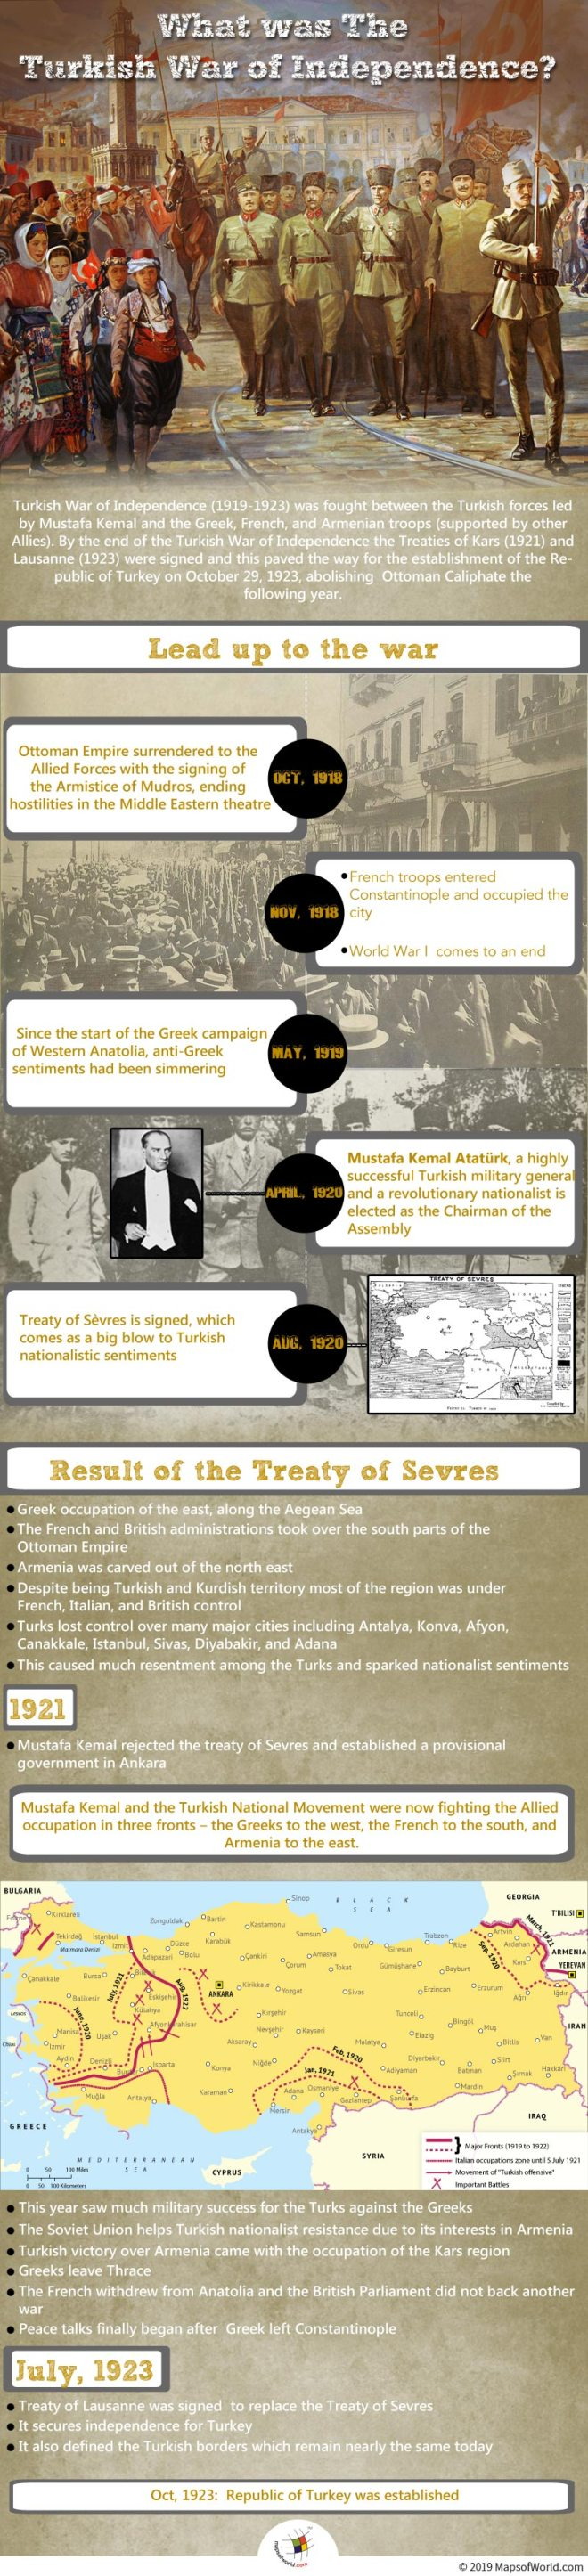 Infographic Giving Details on The Turkish War of Independence